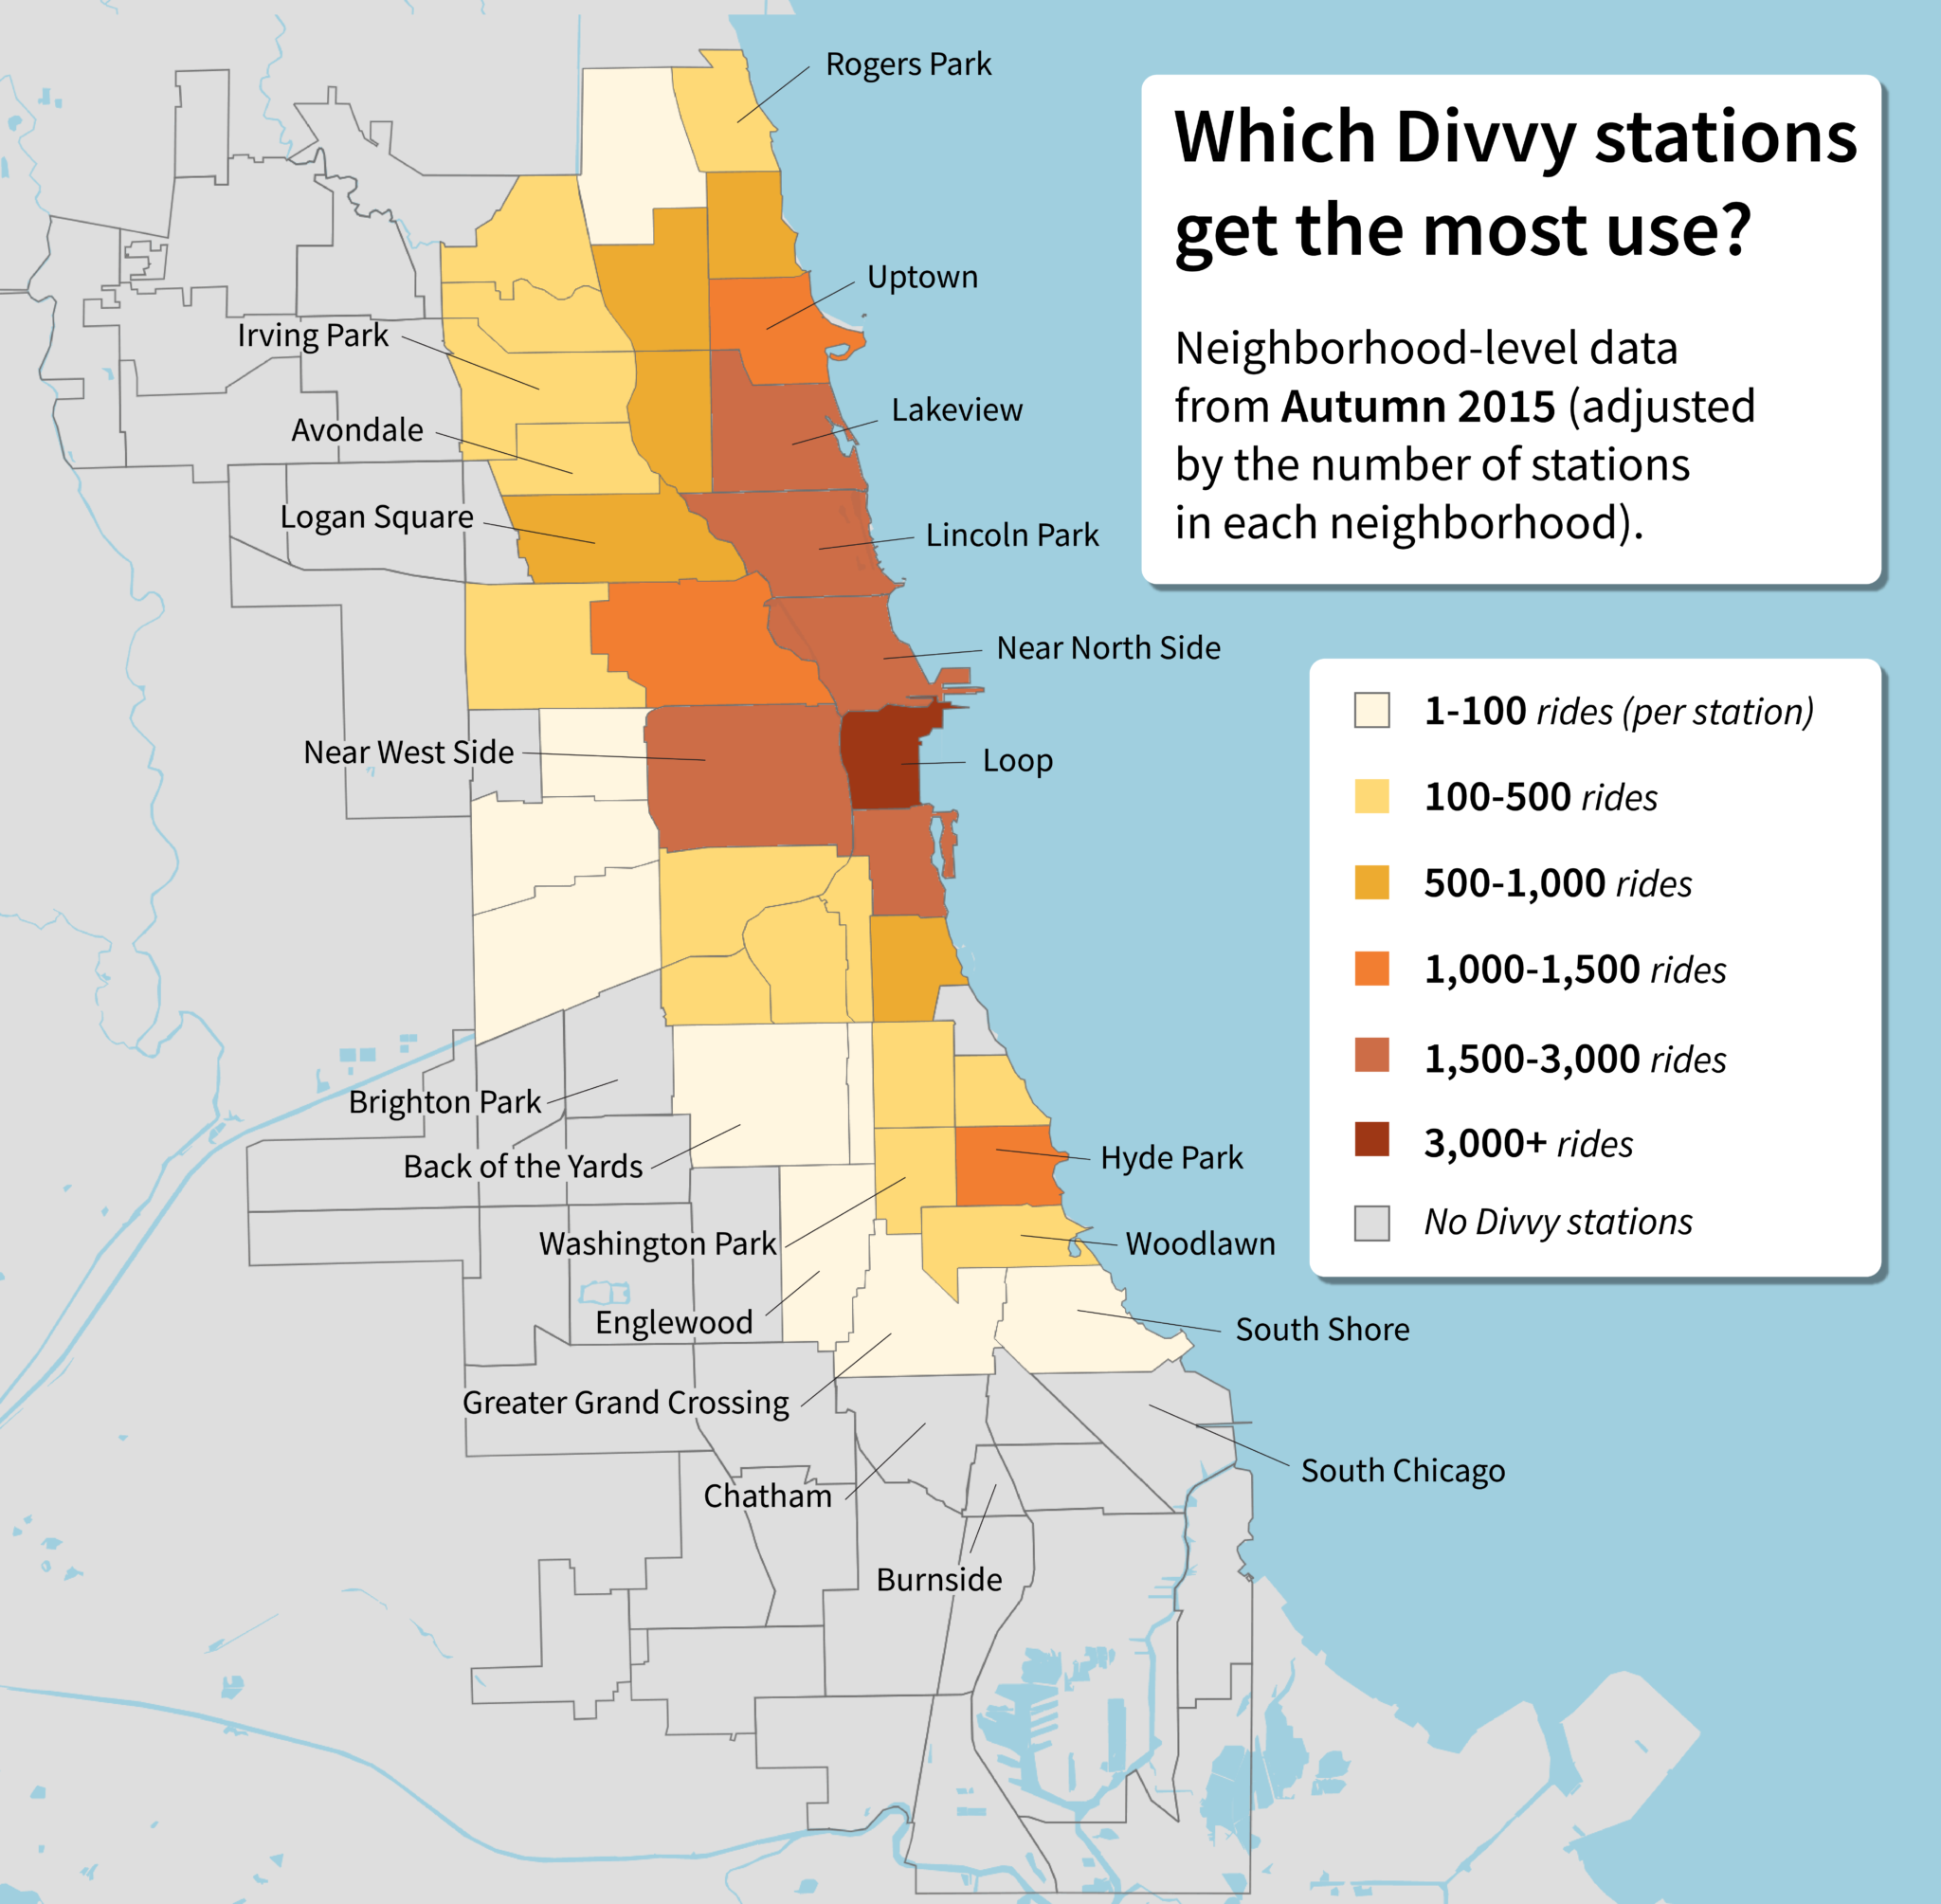 Divvy Station Map Divvy for Everyone? – South Side Weekly Divvy Station Map